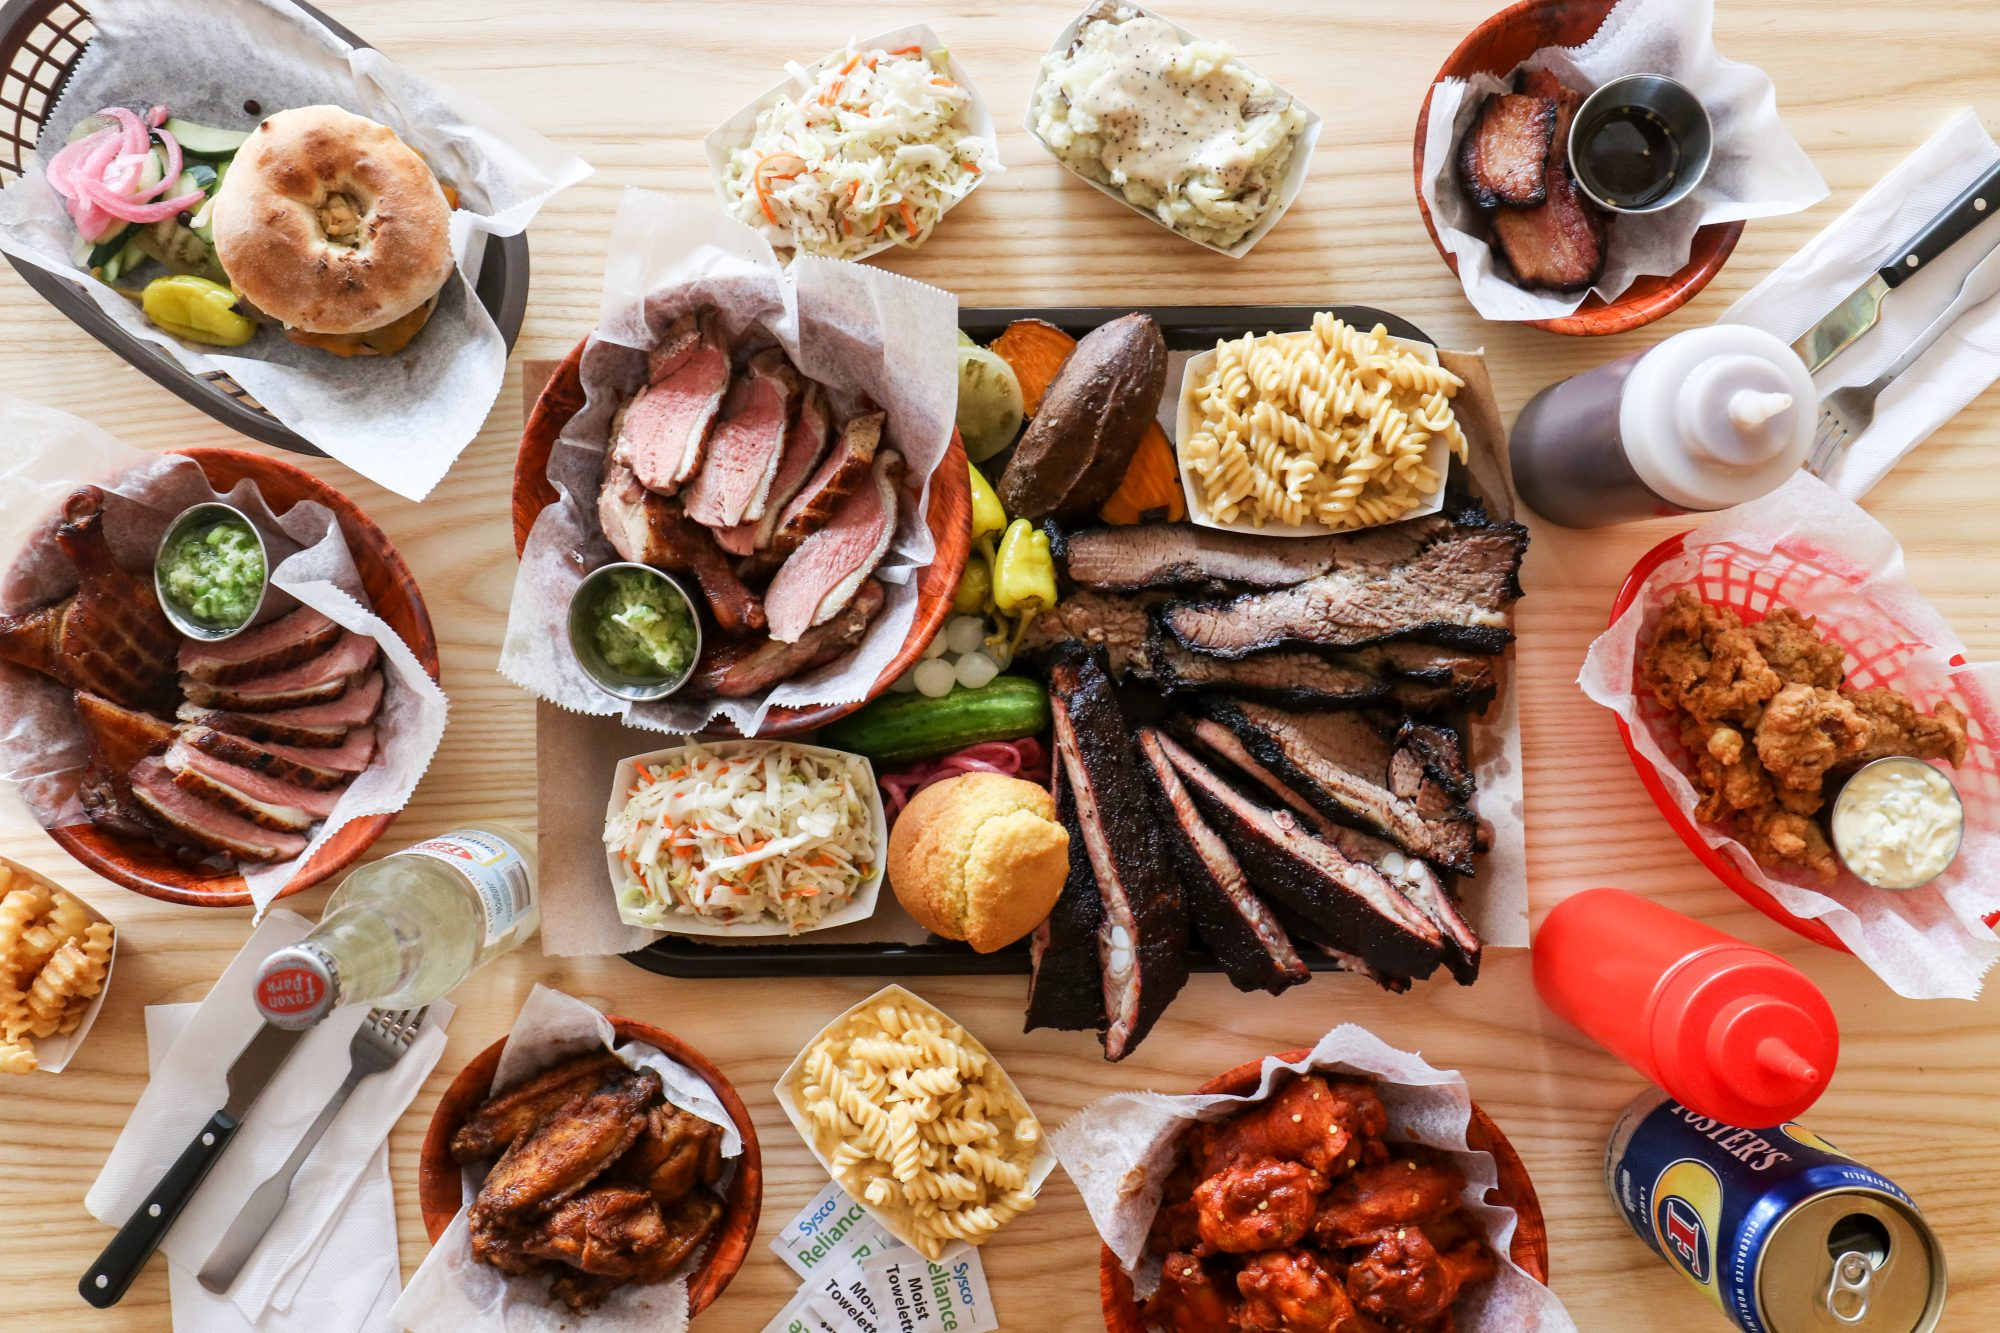 New-York-Barbecue-FT-3.jpg